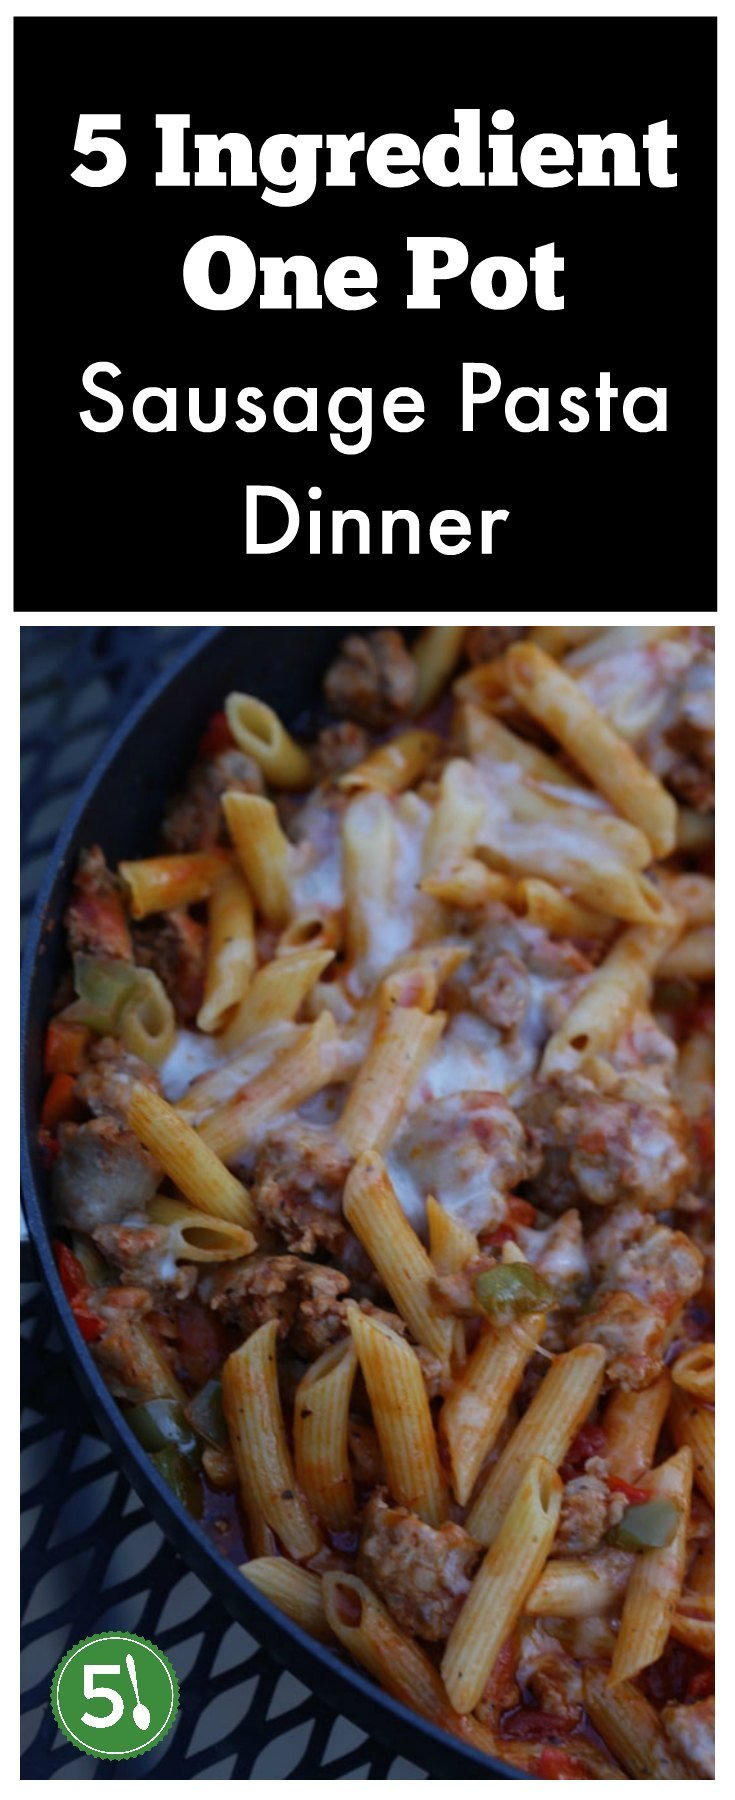 This 5 ingredient one pot italian sausage and pasta dish is perfect for busy families who want to put healthy and easy dinners on the table in a flash.